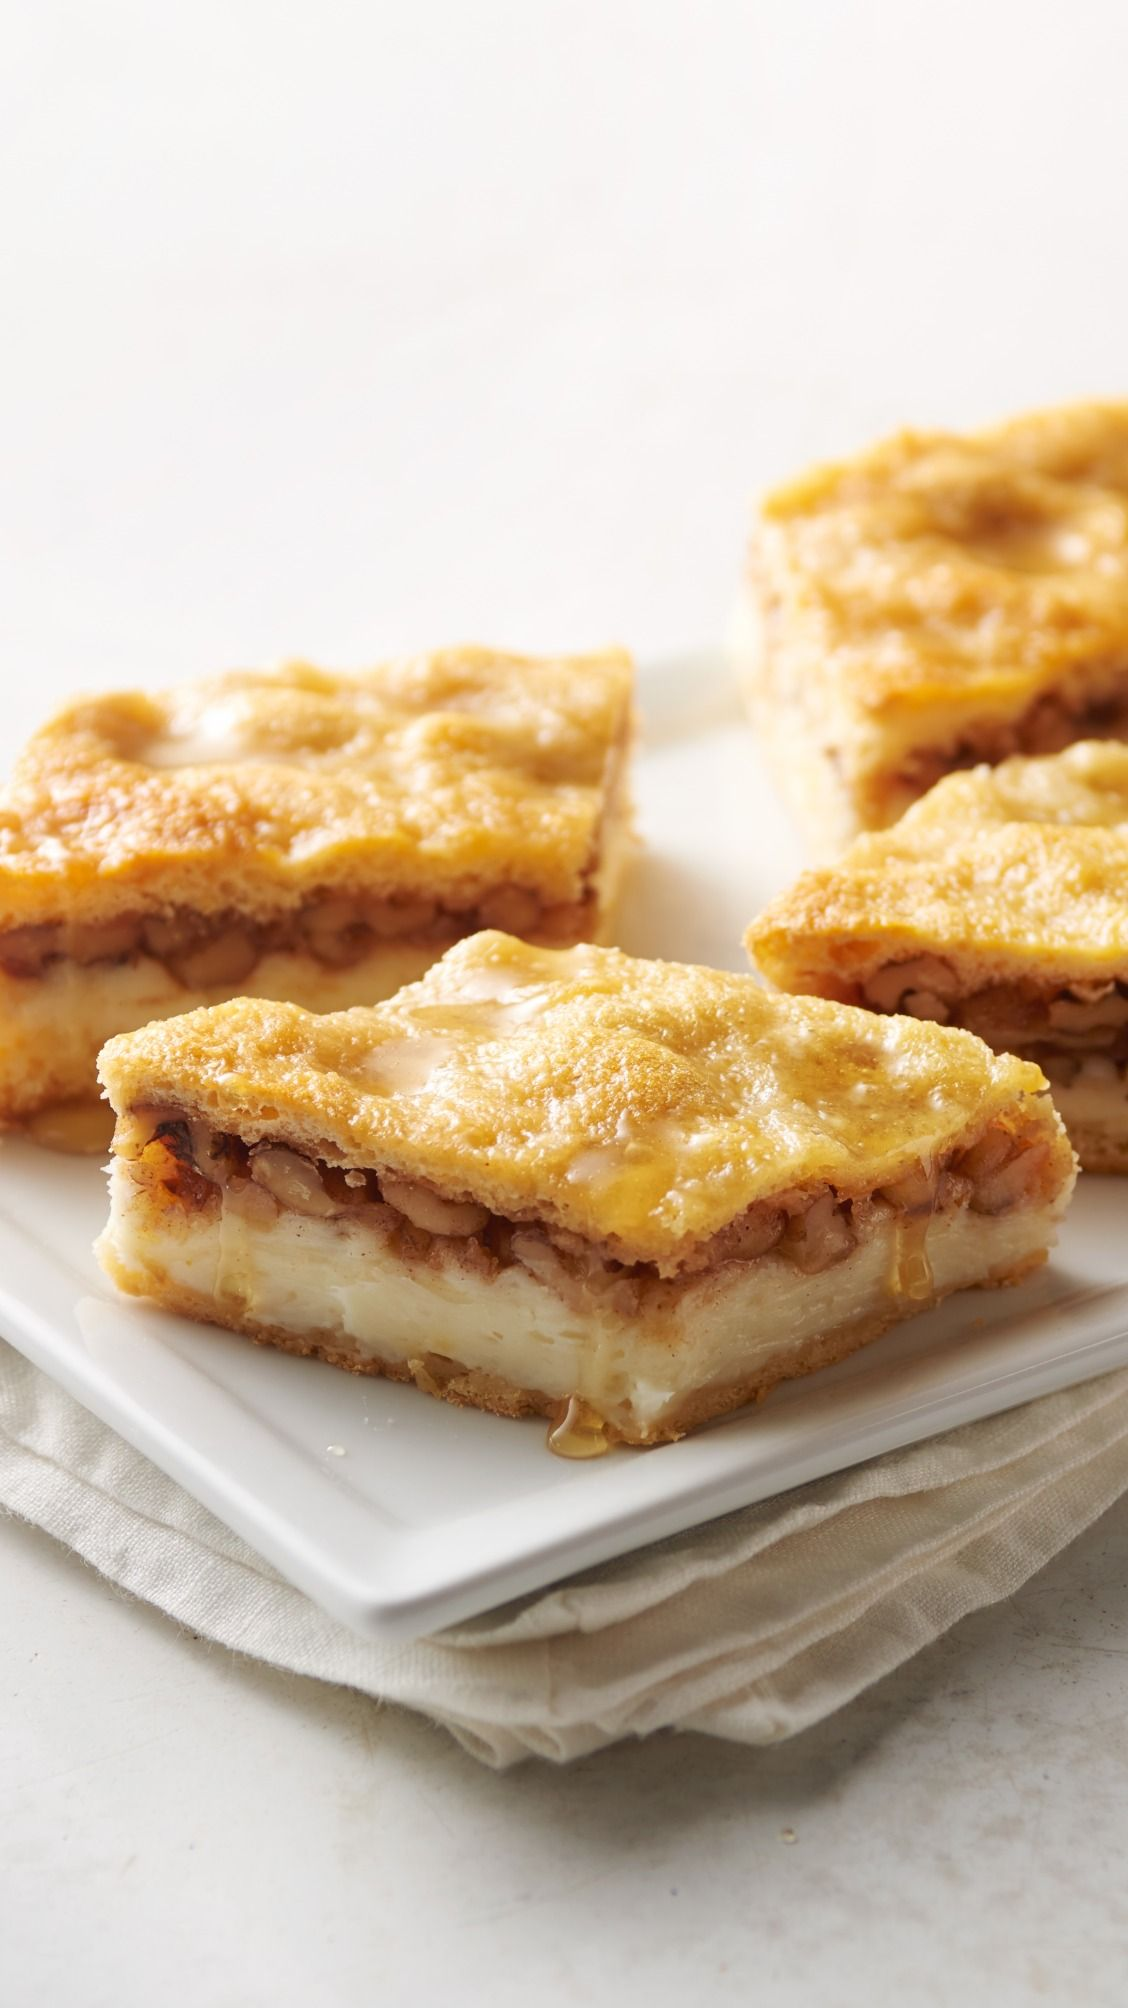 Baklava Cheesecake Bars: We took everyone's favorite buttery, honey-walnut treat (baklava!) and turned it into incredibly easy-but-impressive dessert bar recipe mash-up.